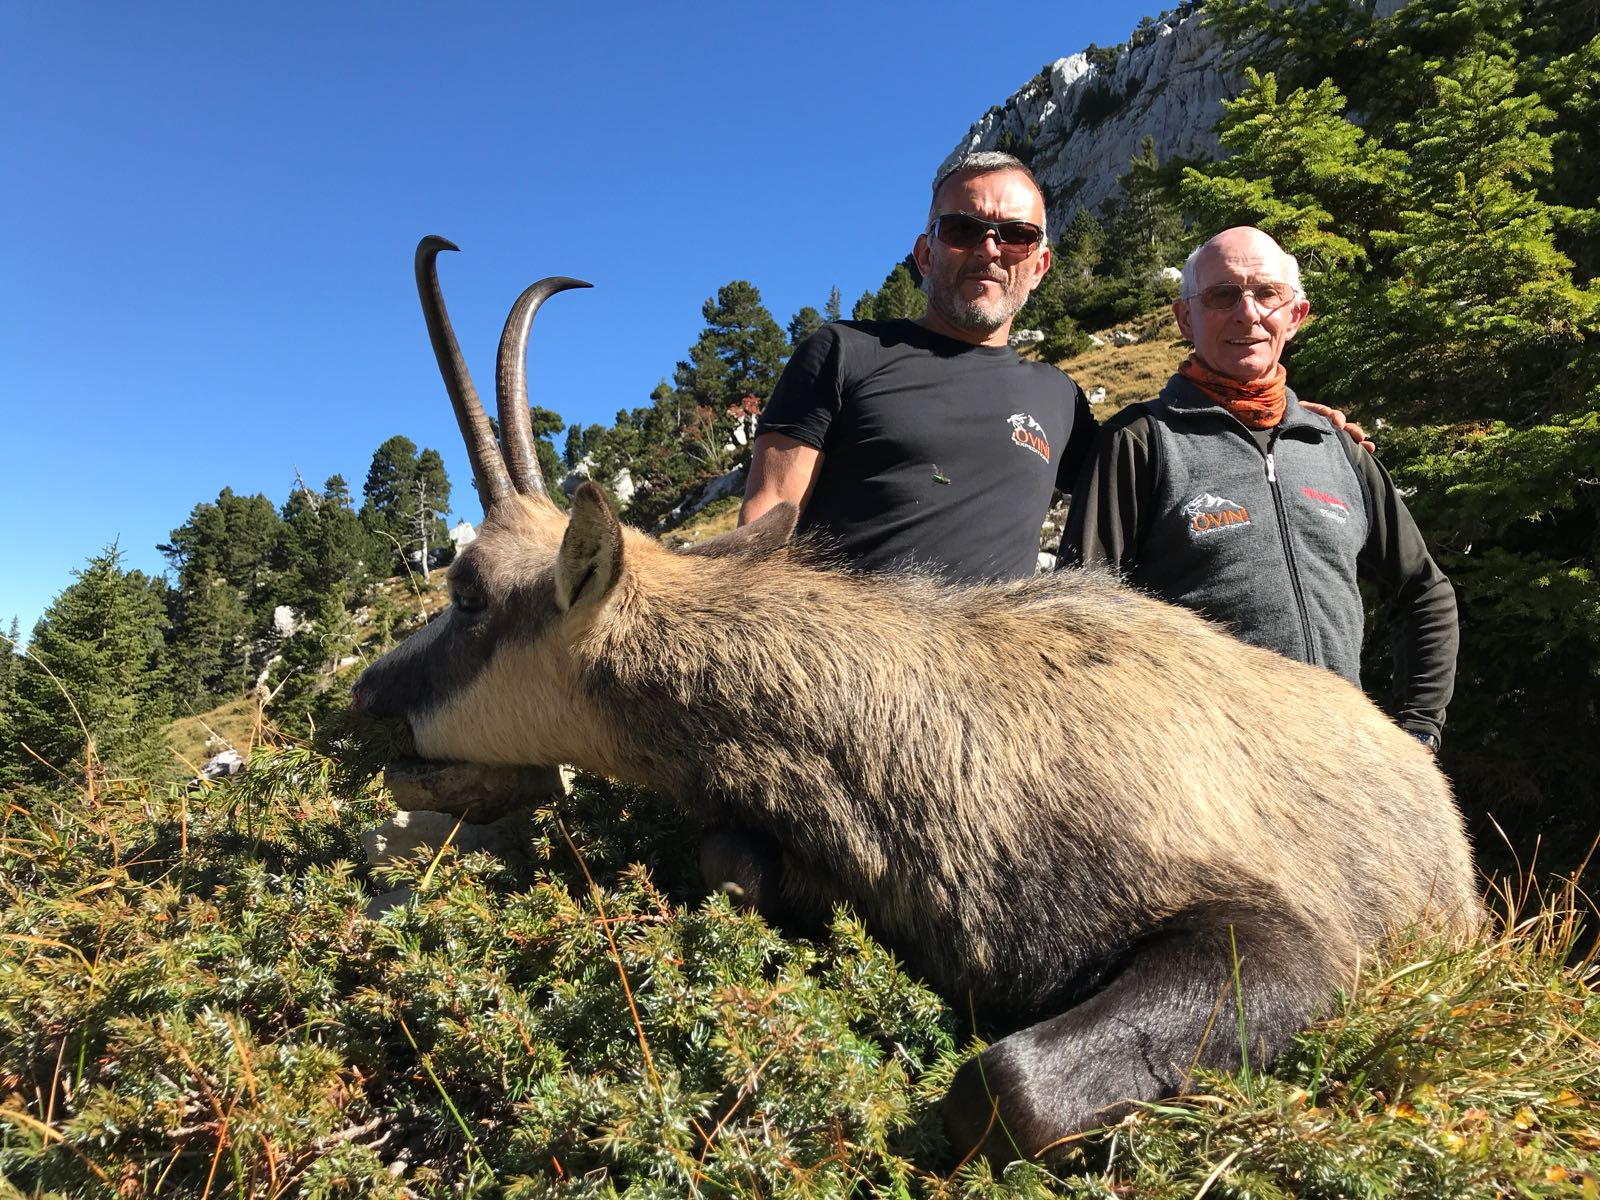 d chamois chevre medaillable chasse france ovini expeditions